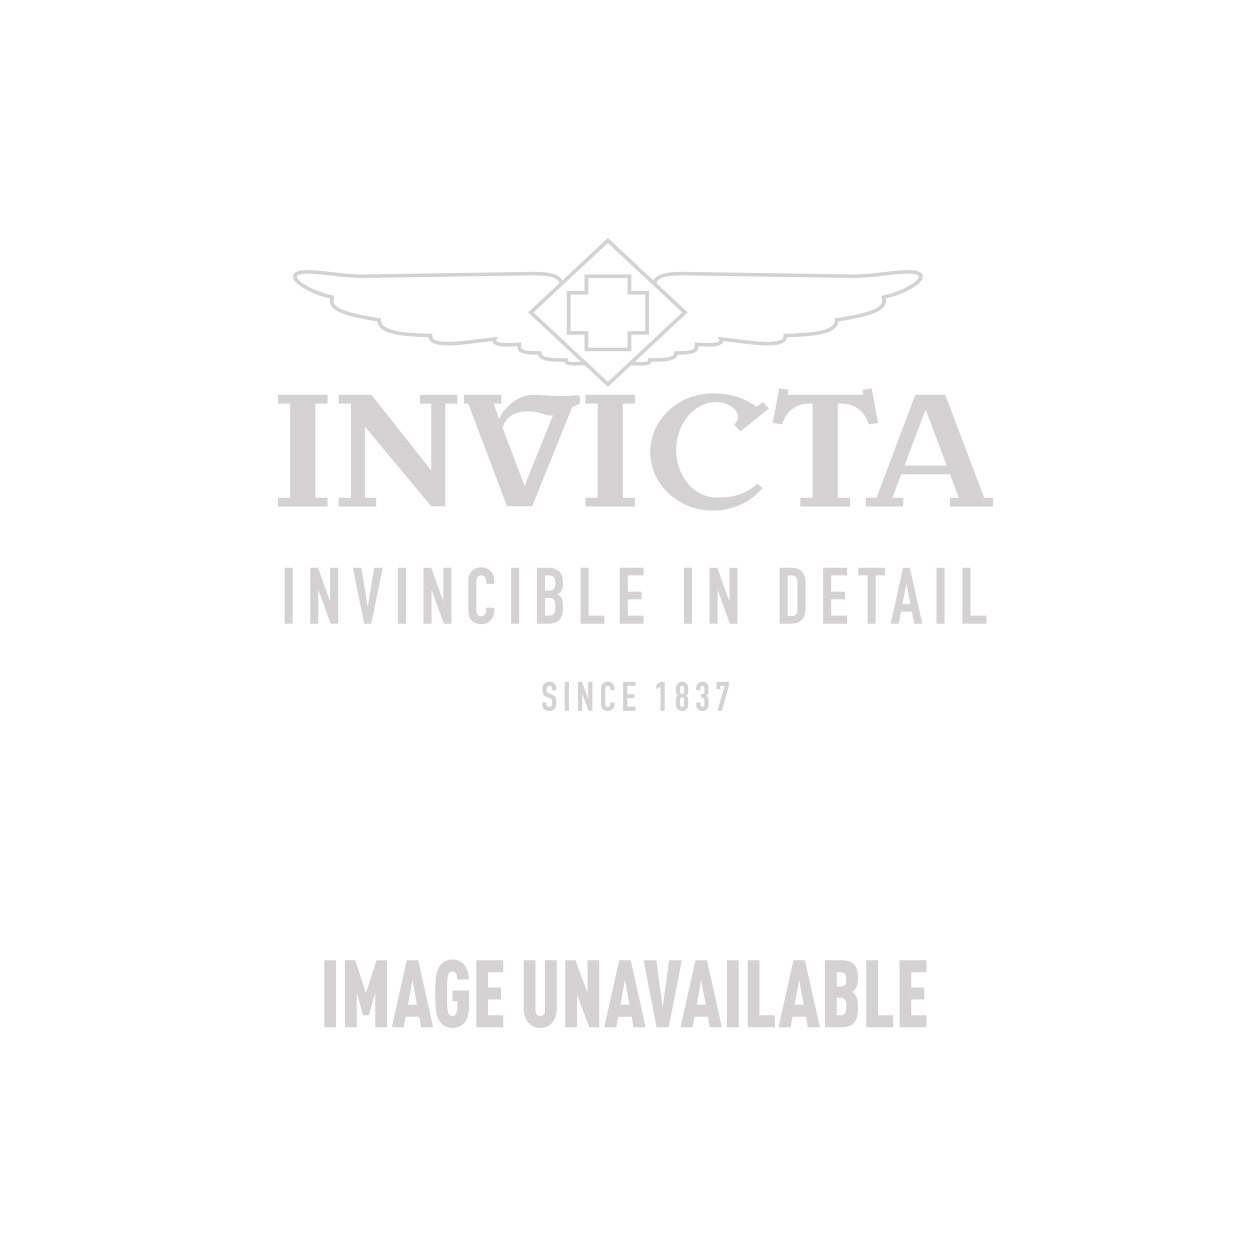 Invicta I-Force Quartz Watch - Stainless Steel case with Steel, Gold tone Stainless Steel band - Model 14960